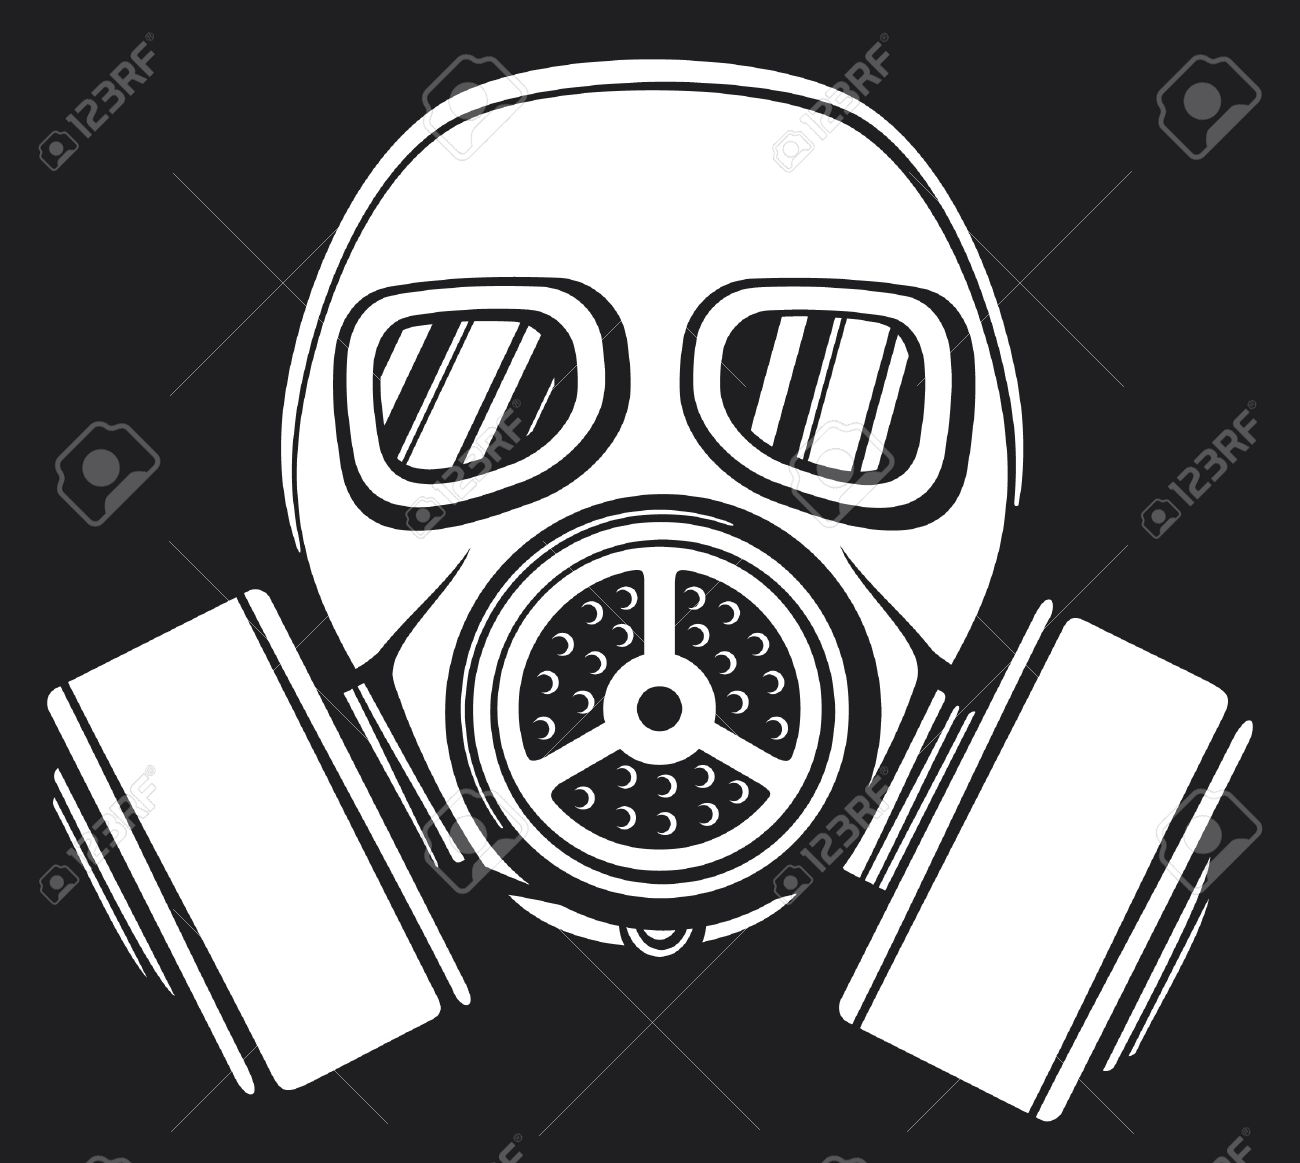 Army Gas Mask Drawing Gas Mask Army Gas Mask